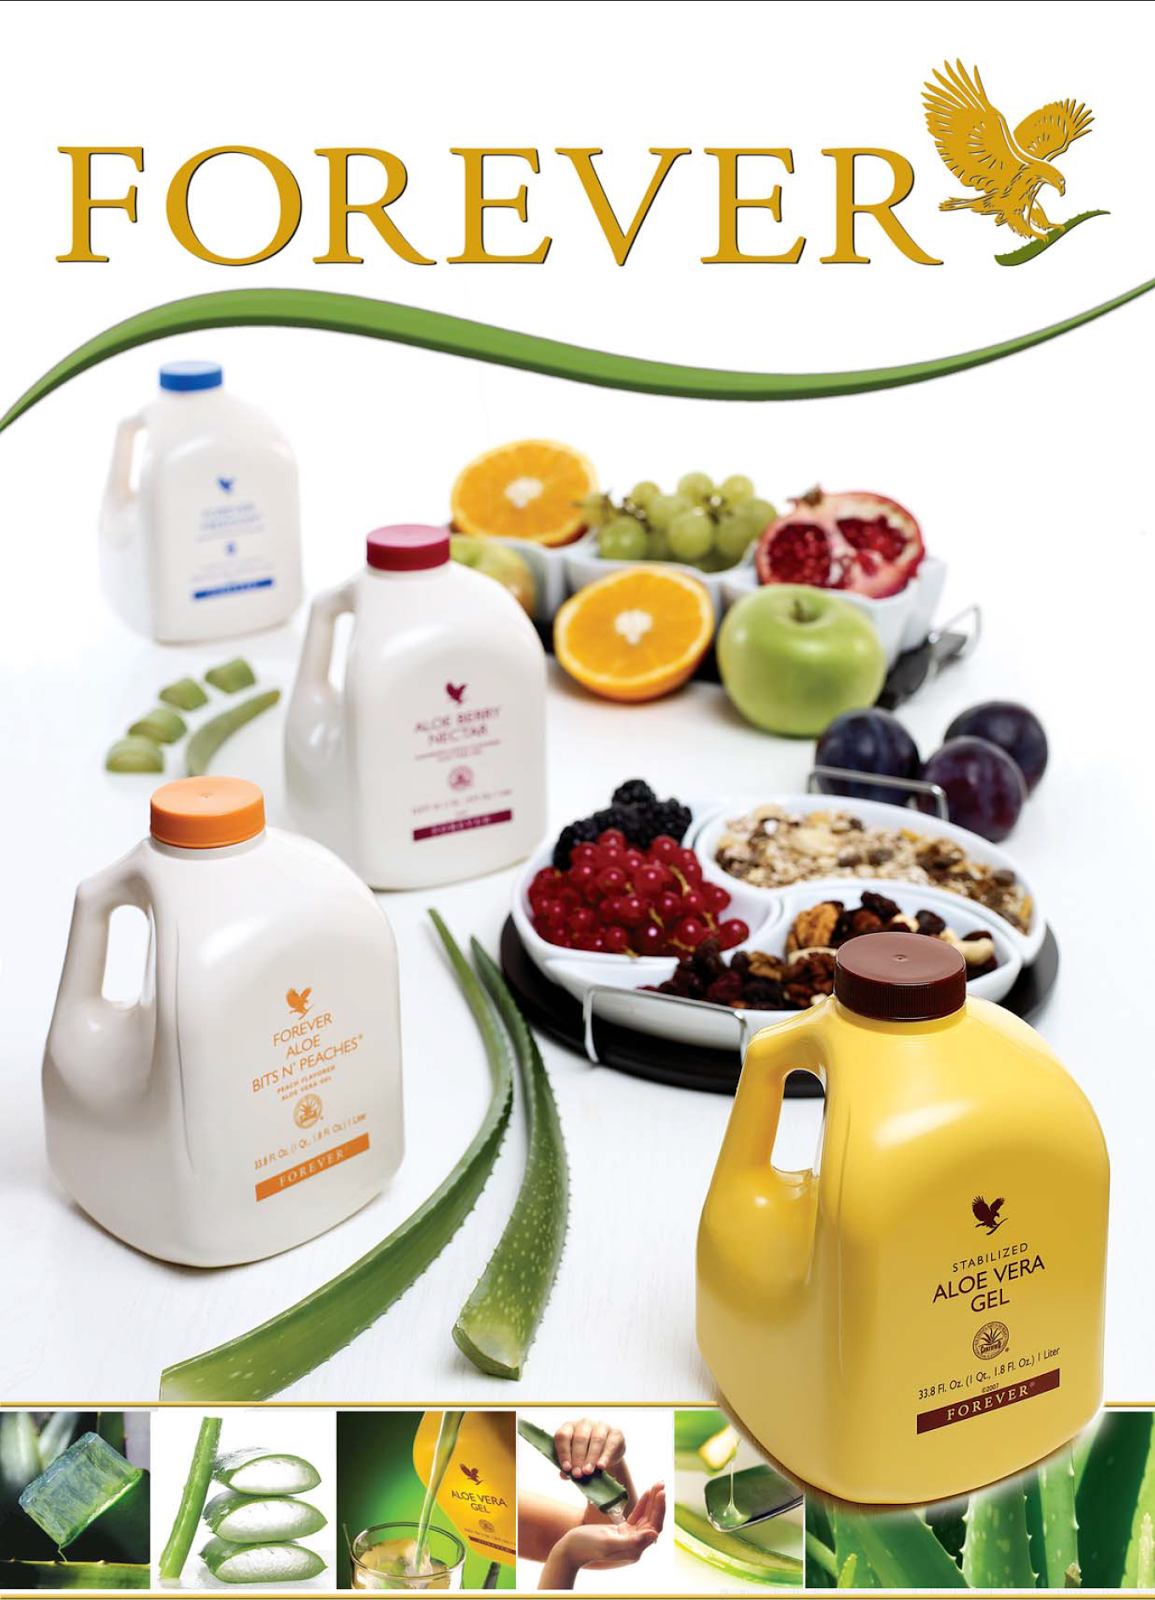 Pin by Tebogo Trudee Maimane on forever lifestyle | Forever living